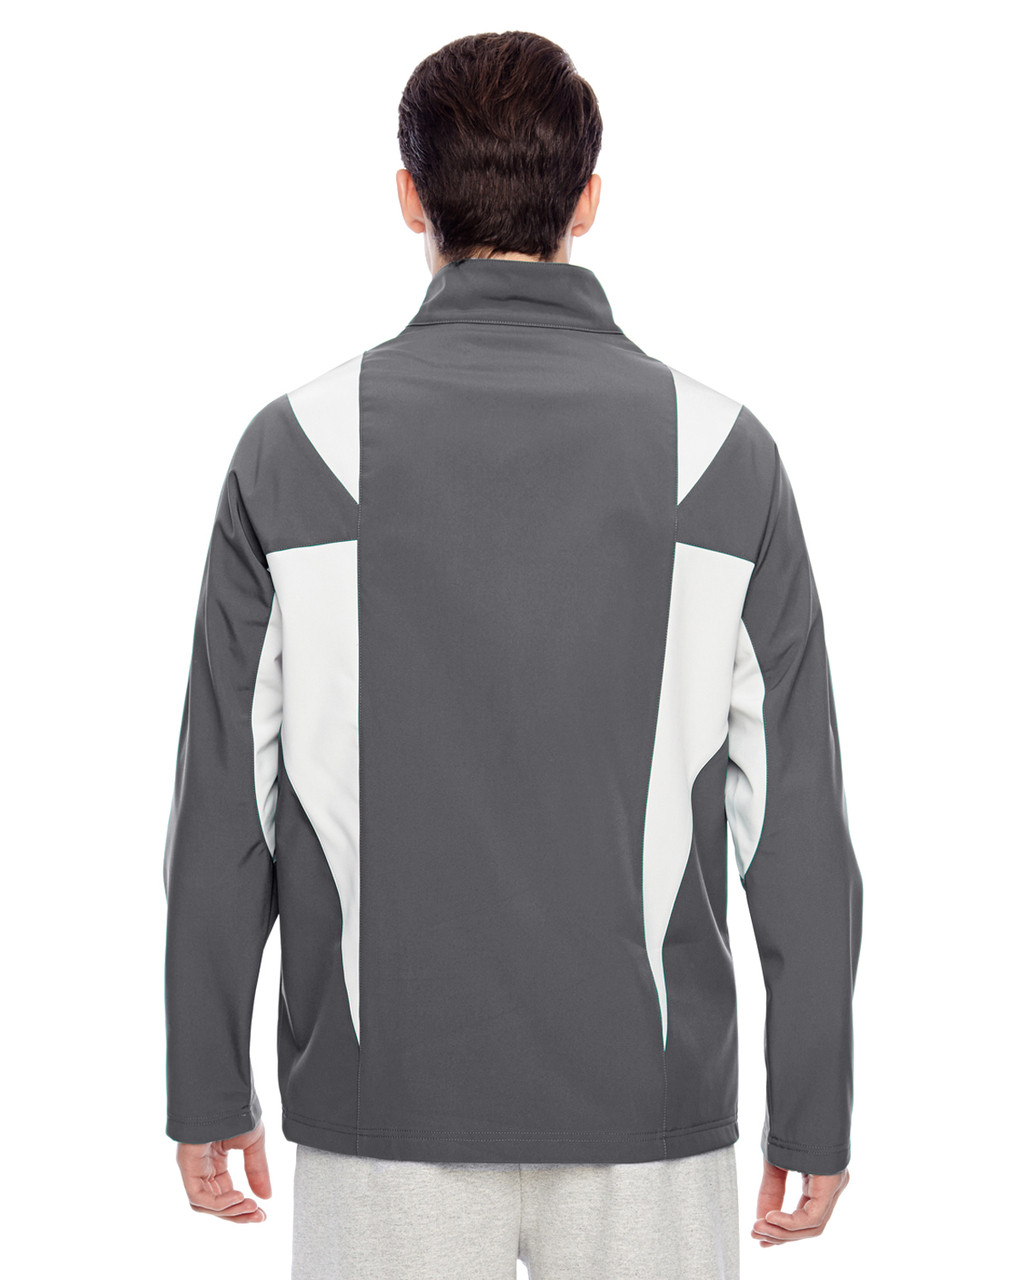 Sport Graphite/Sport Silver - Back, TT82 Team 365 Icon Colourblock Soft Shell Jacket  | BlankClothing.ca